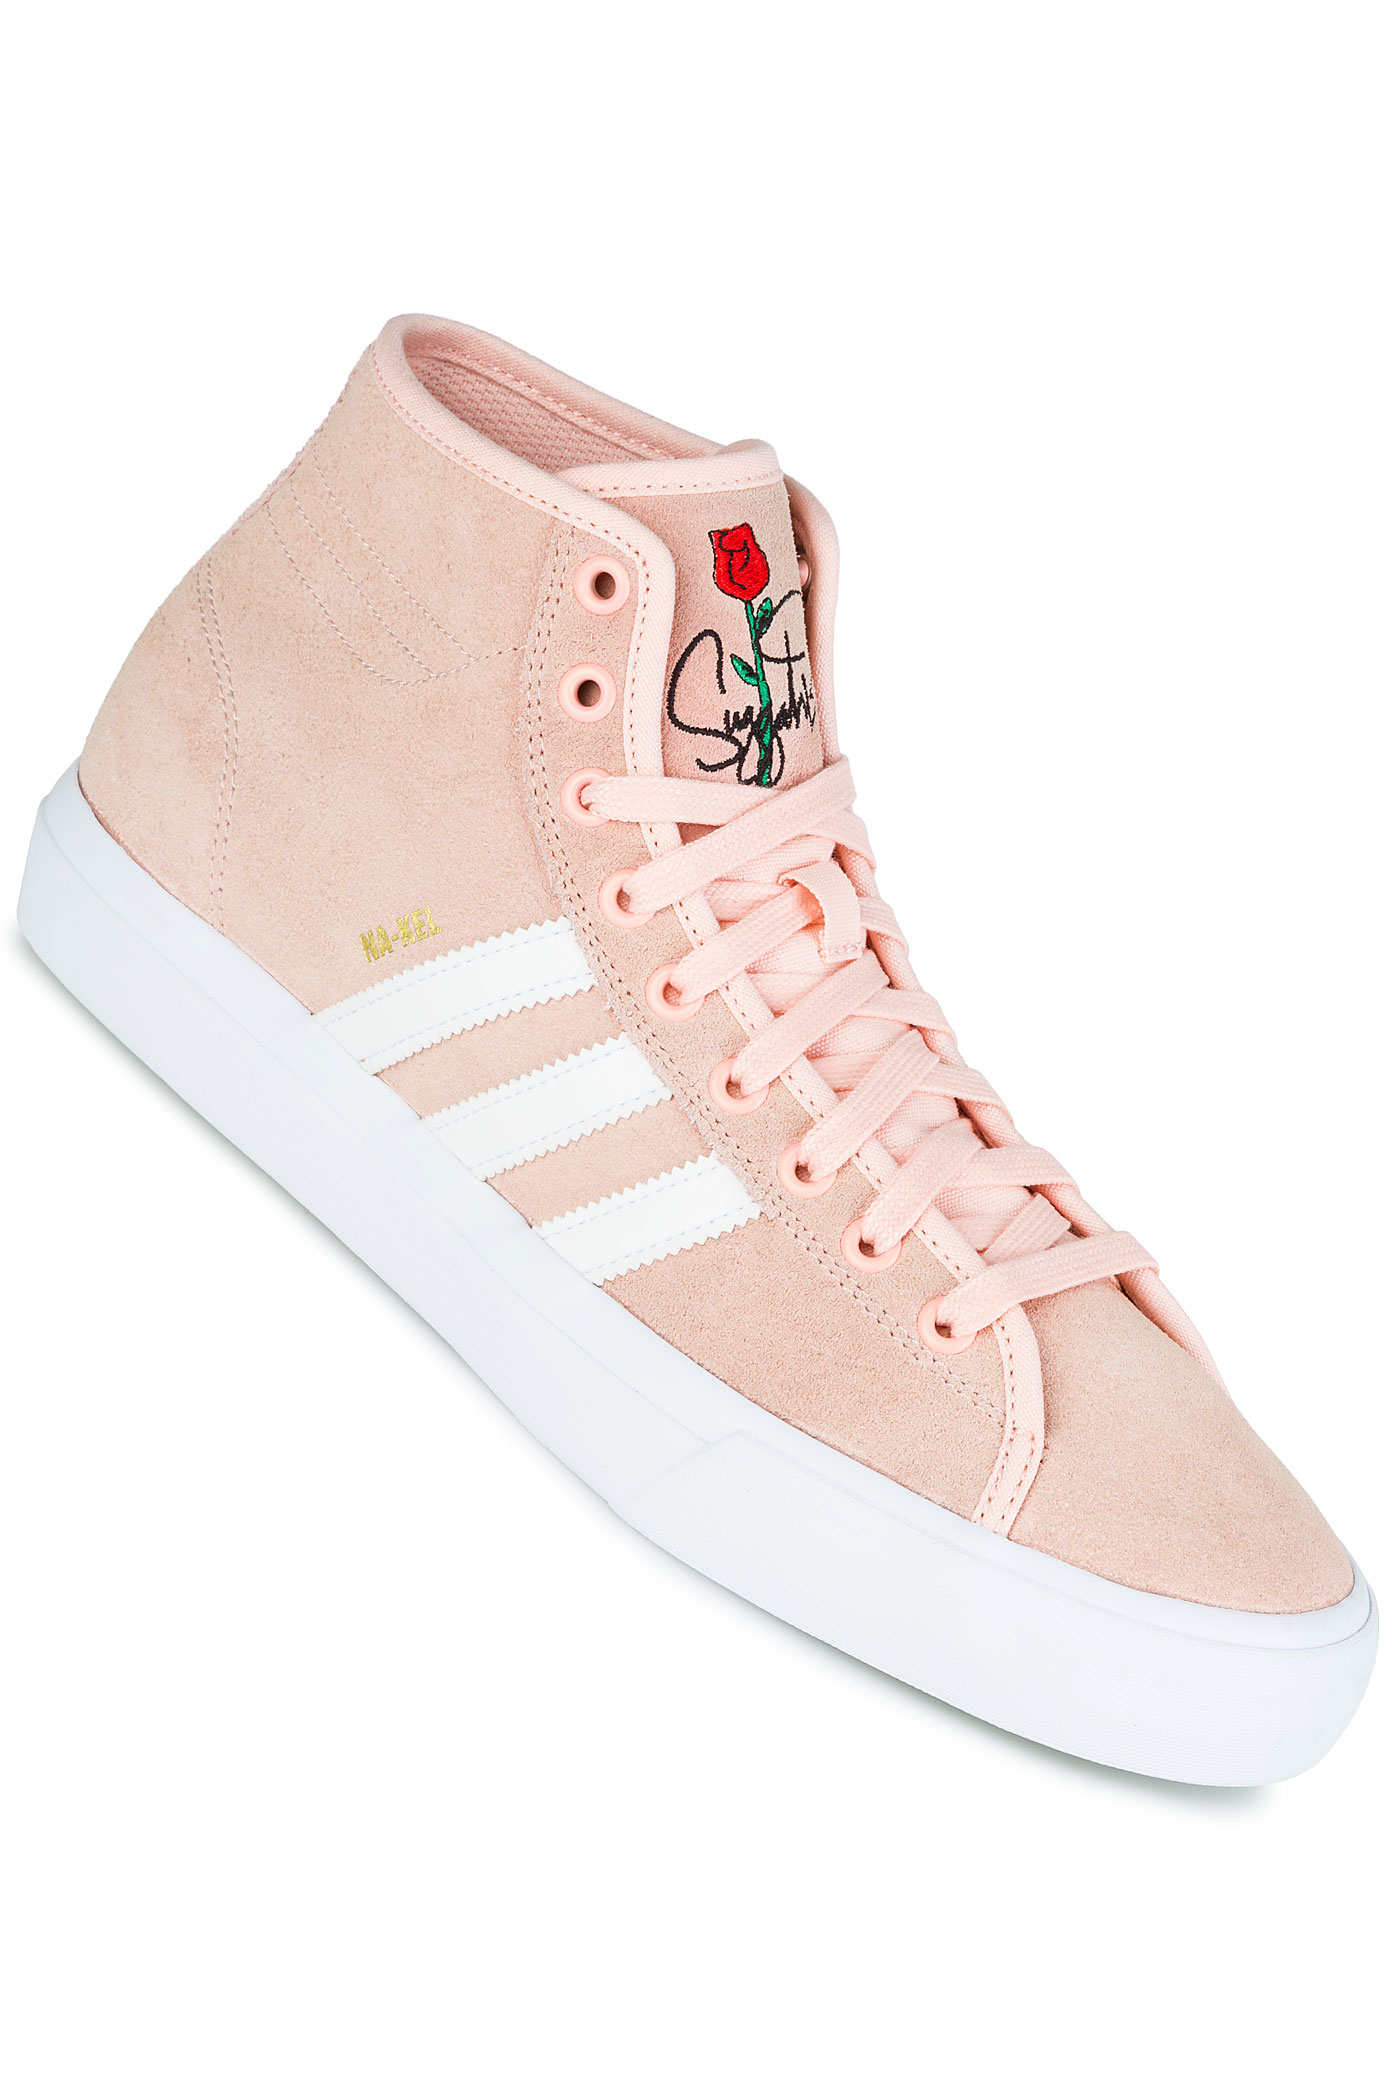 adidas Matchcourt High RX Shoe (haze coral white) buy at skatedeluxe 2482e43be